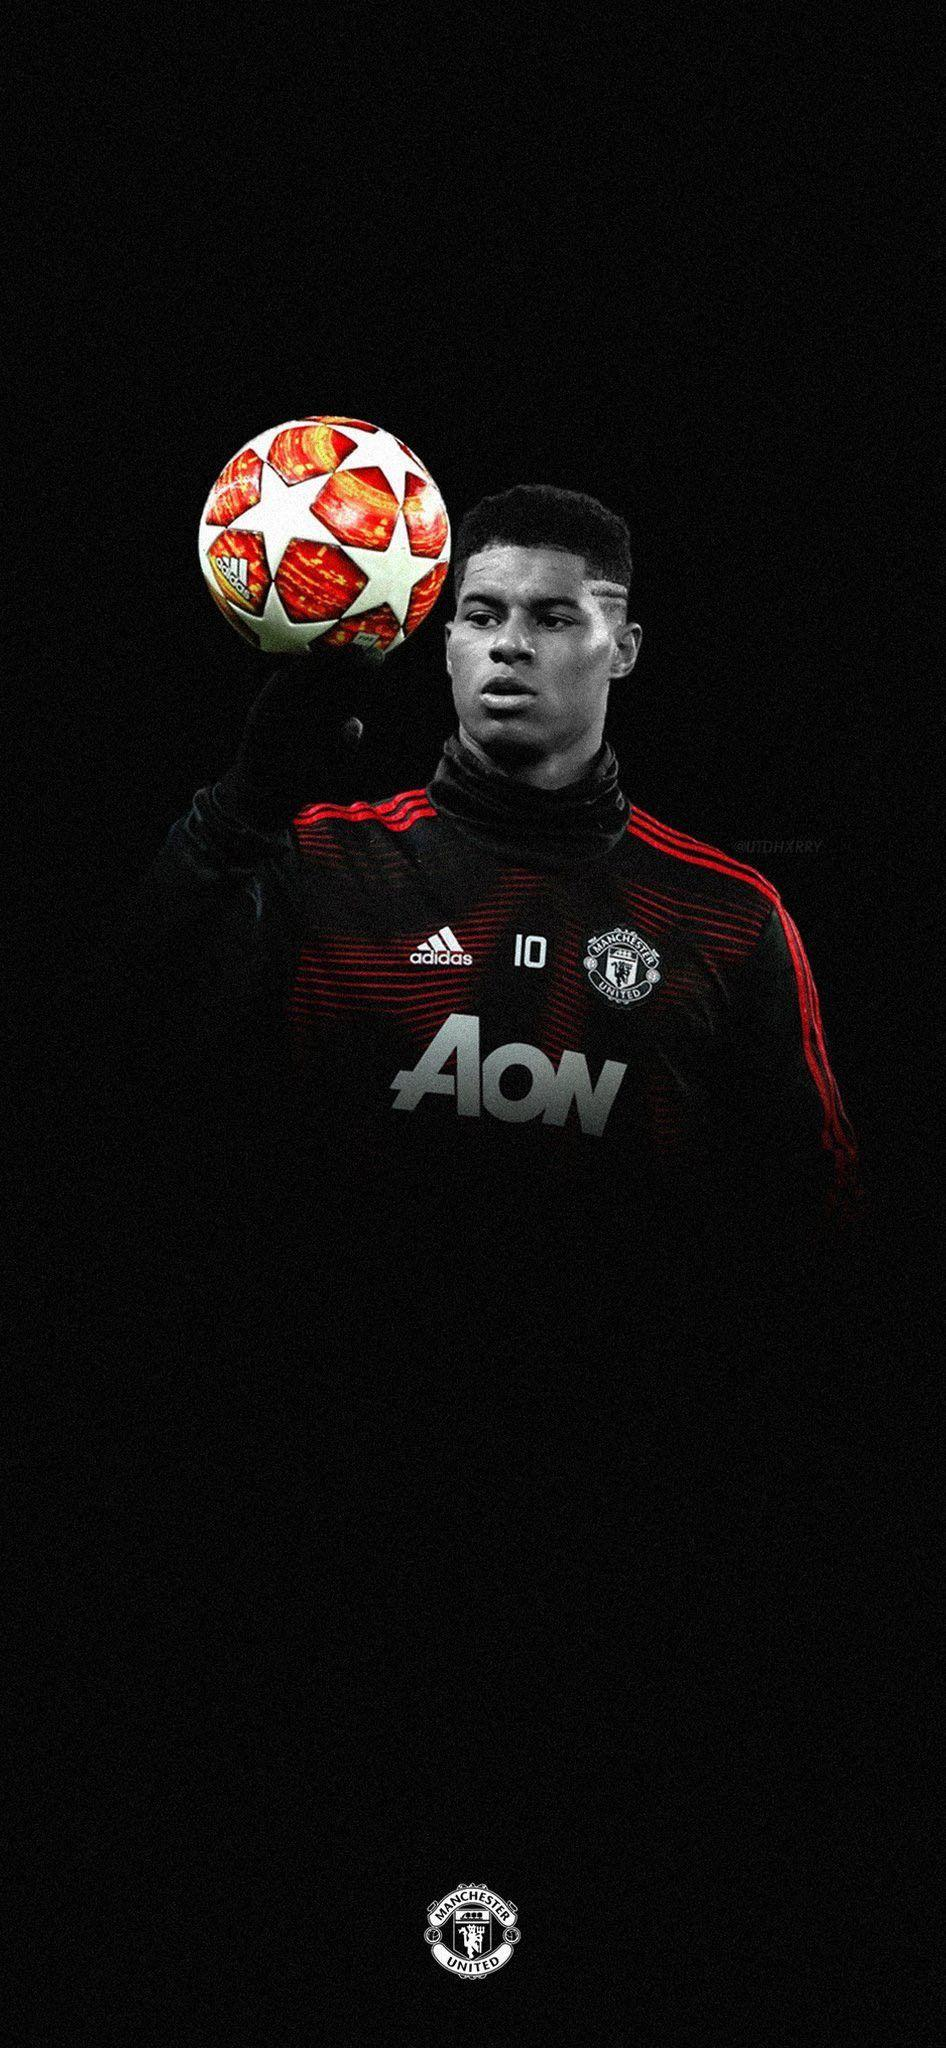 manchester united hd wallpapers download the football lovers manchester united hd wallpapers